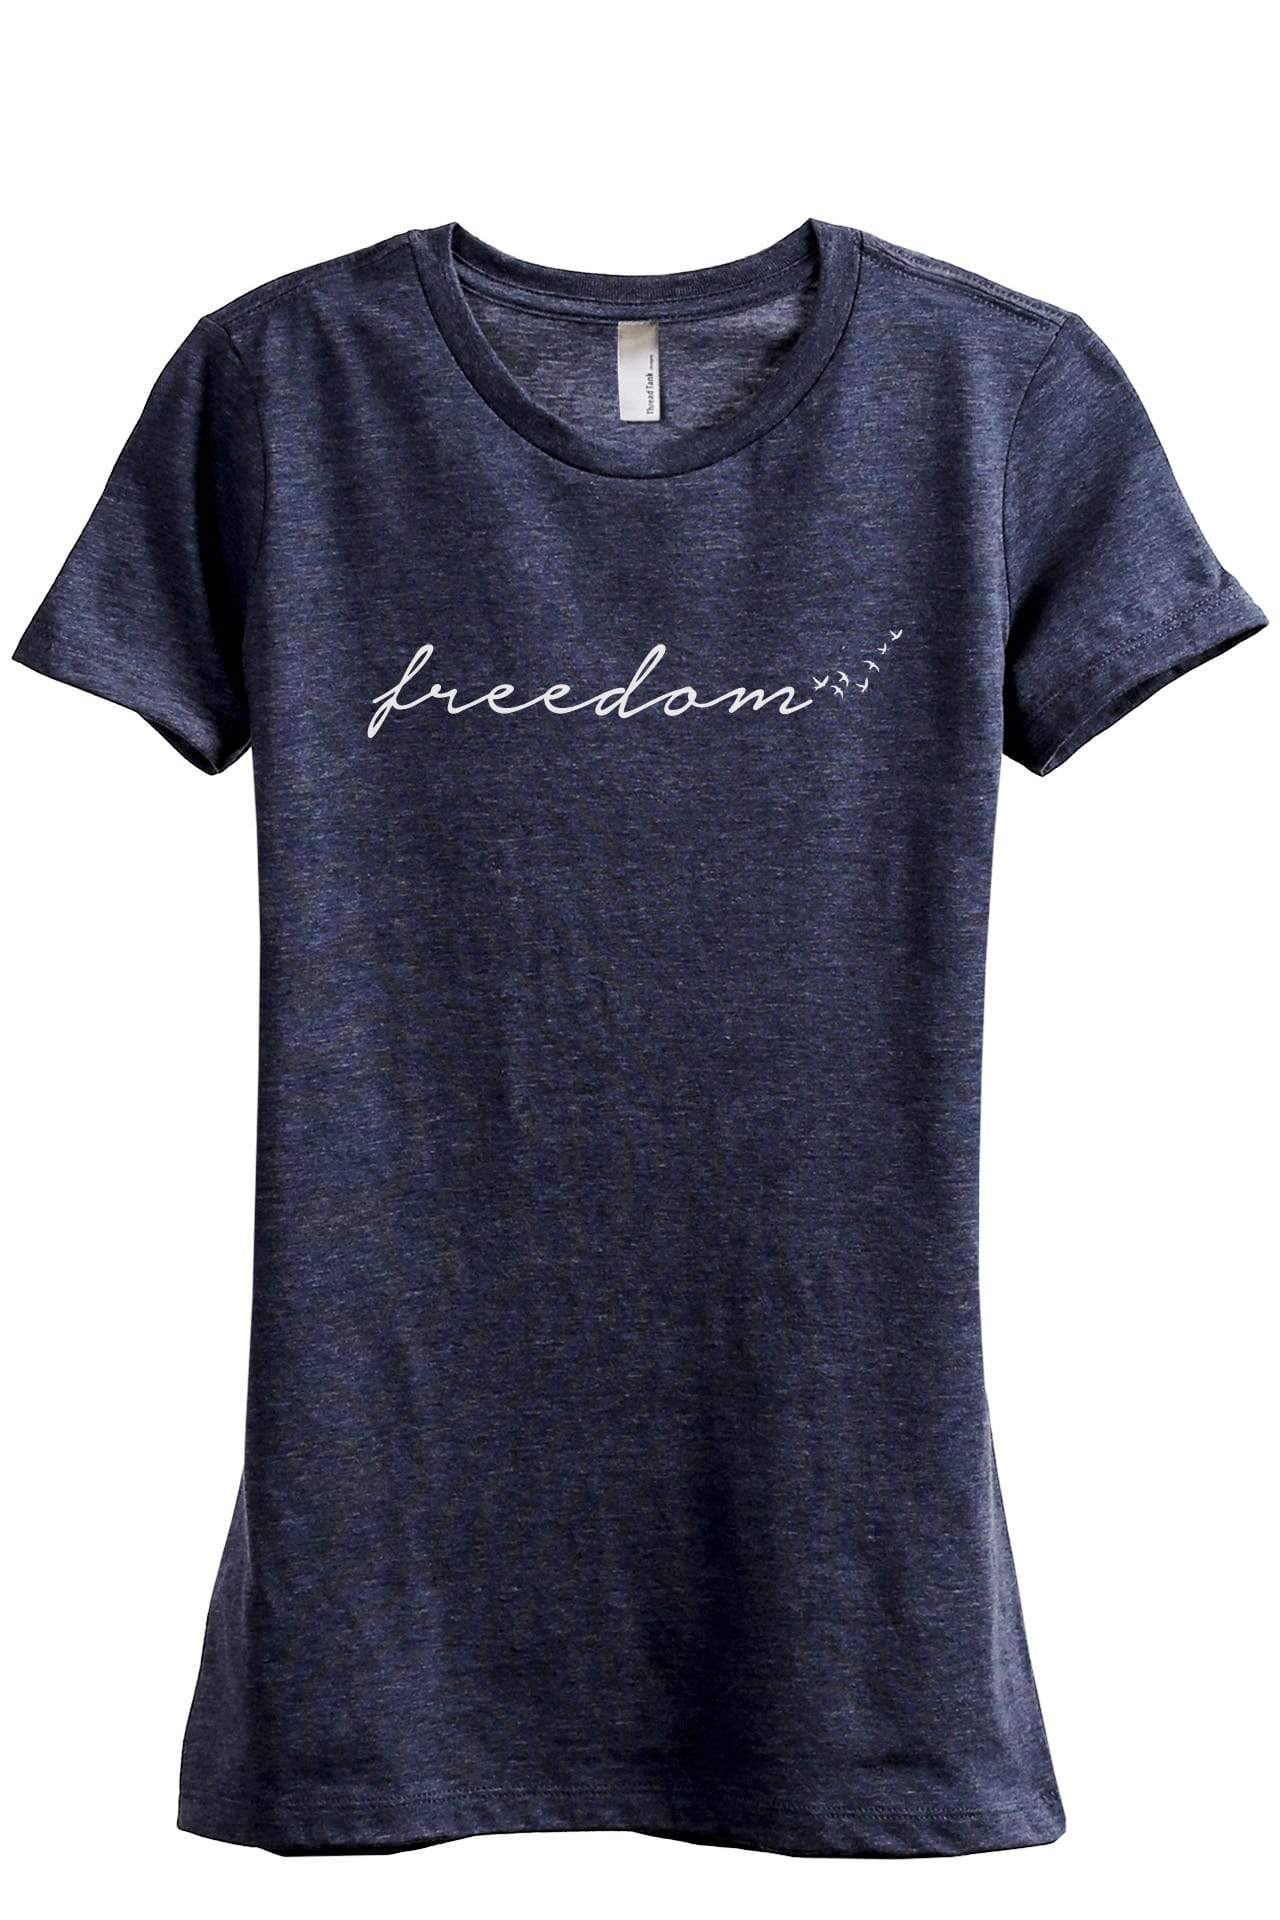 Freedom Script Women's Relaxed Crewneck T-Shirt Top Tee Heather Navy